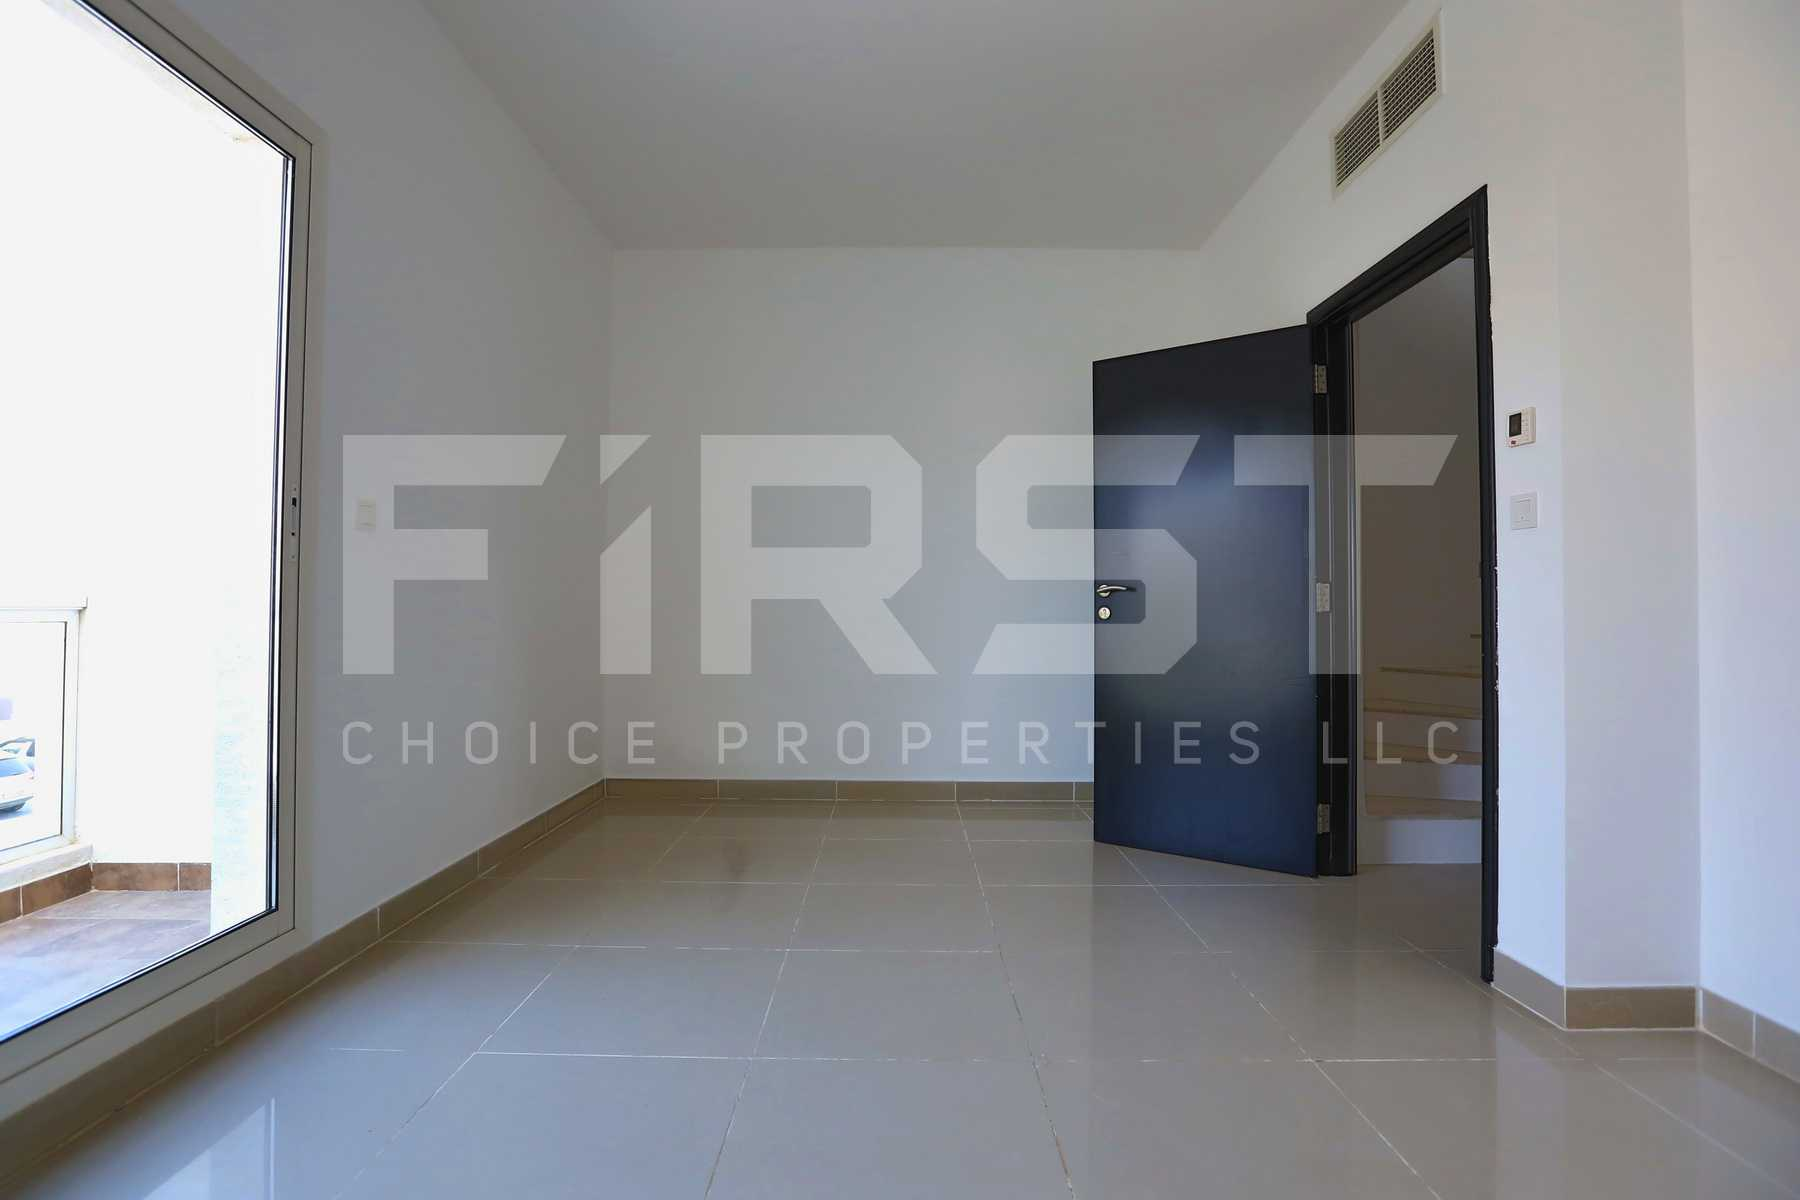 Internal Photo of 3 Bedroom Villa in Al Reef Villas Al Reef Abu Dhabi UAE 225.2 sq.m 2424 sq.ft (20).jpg